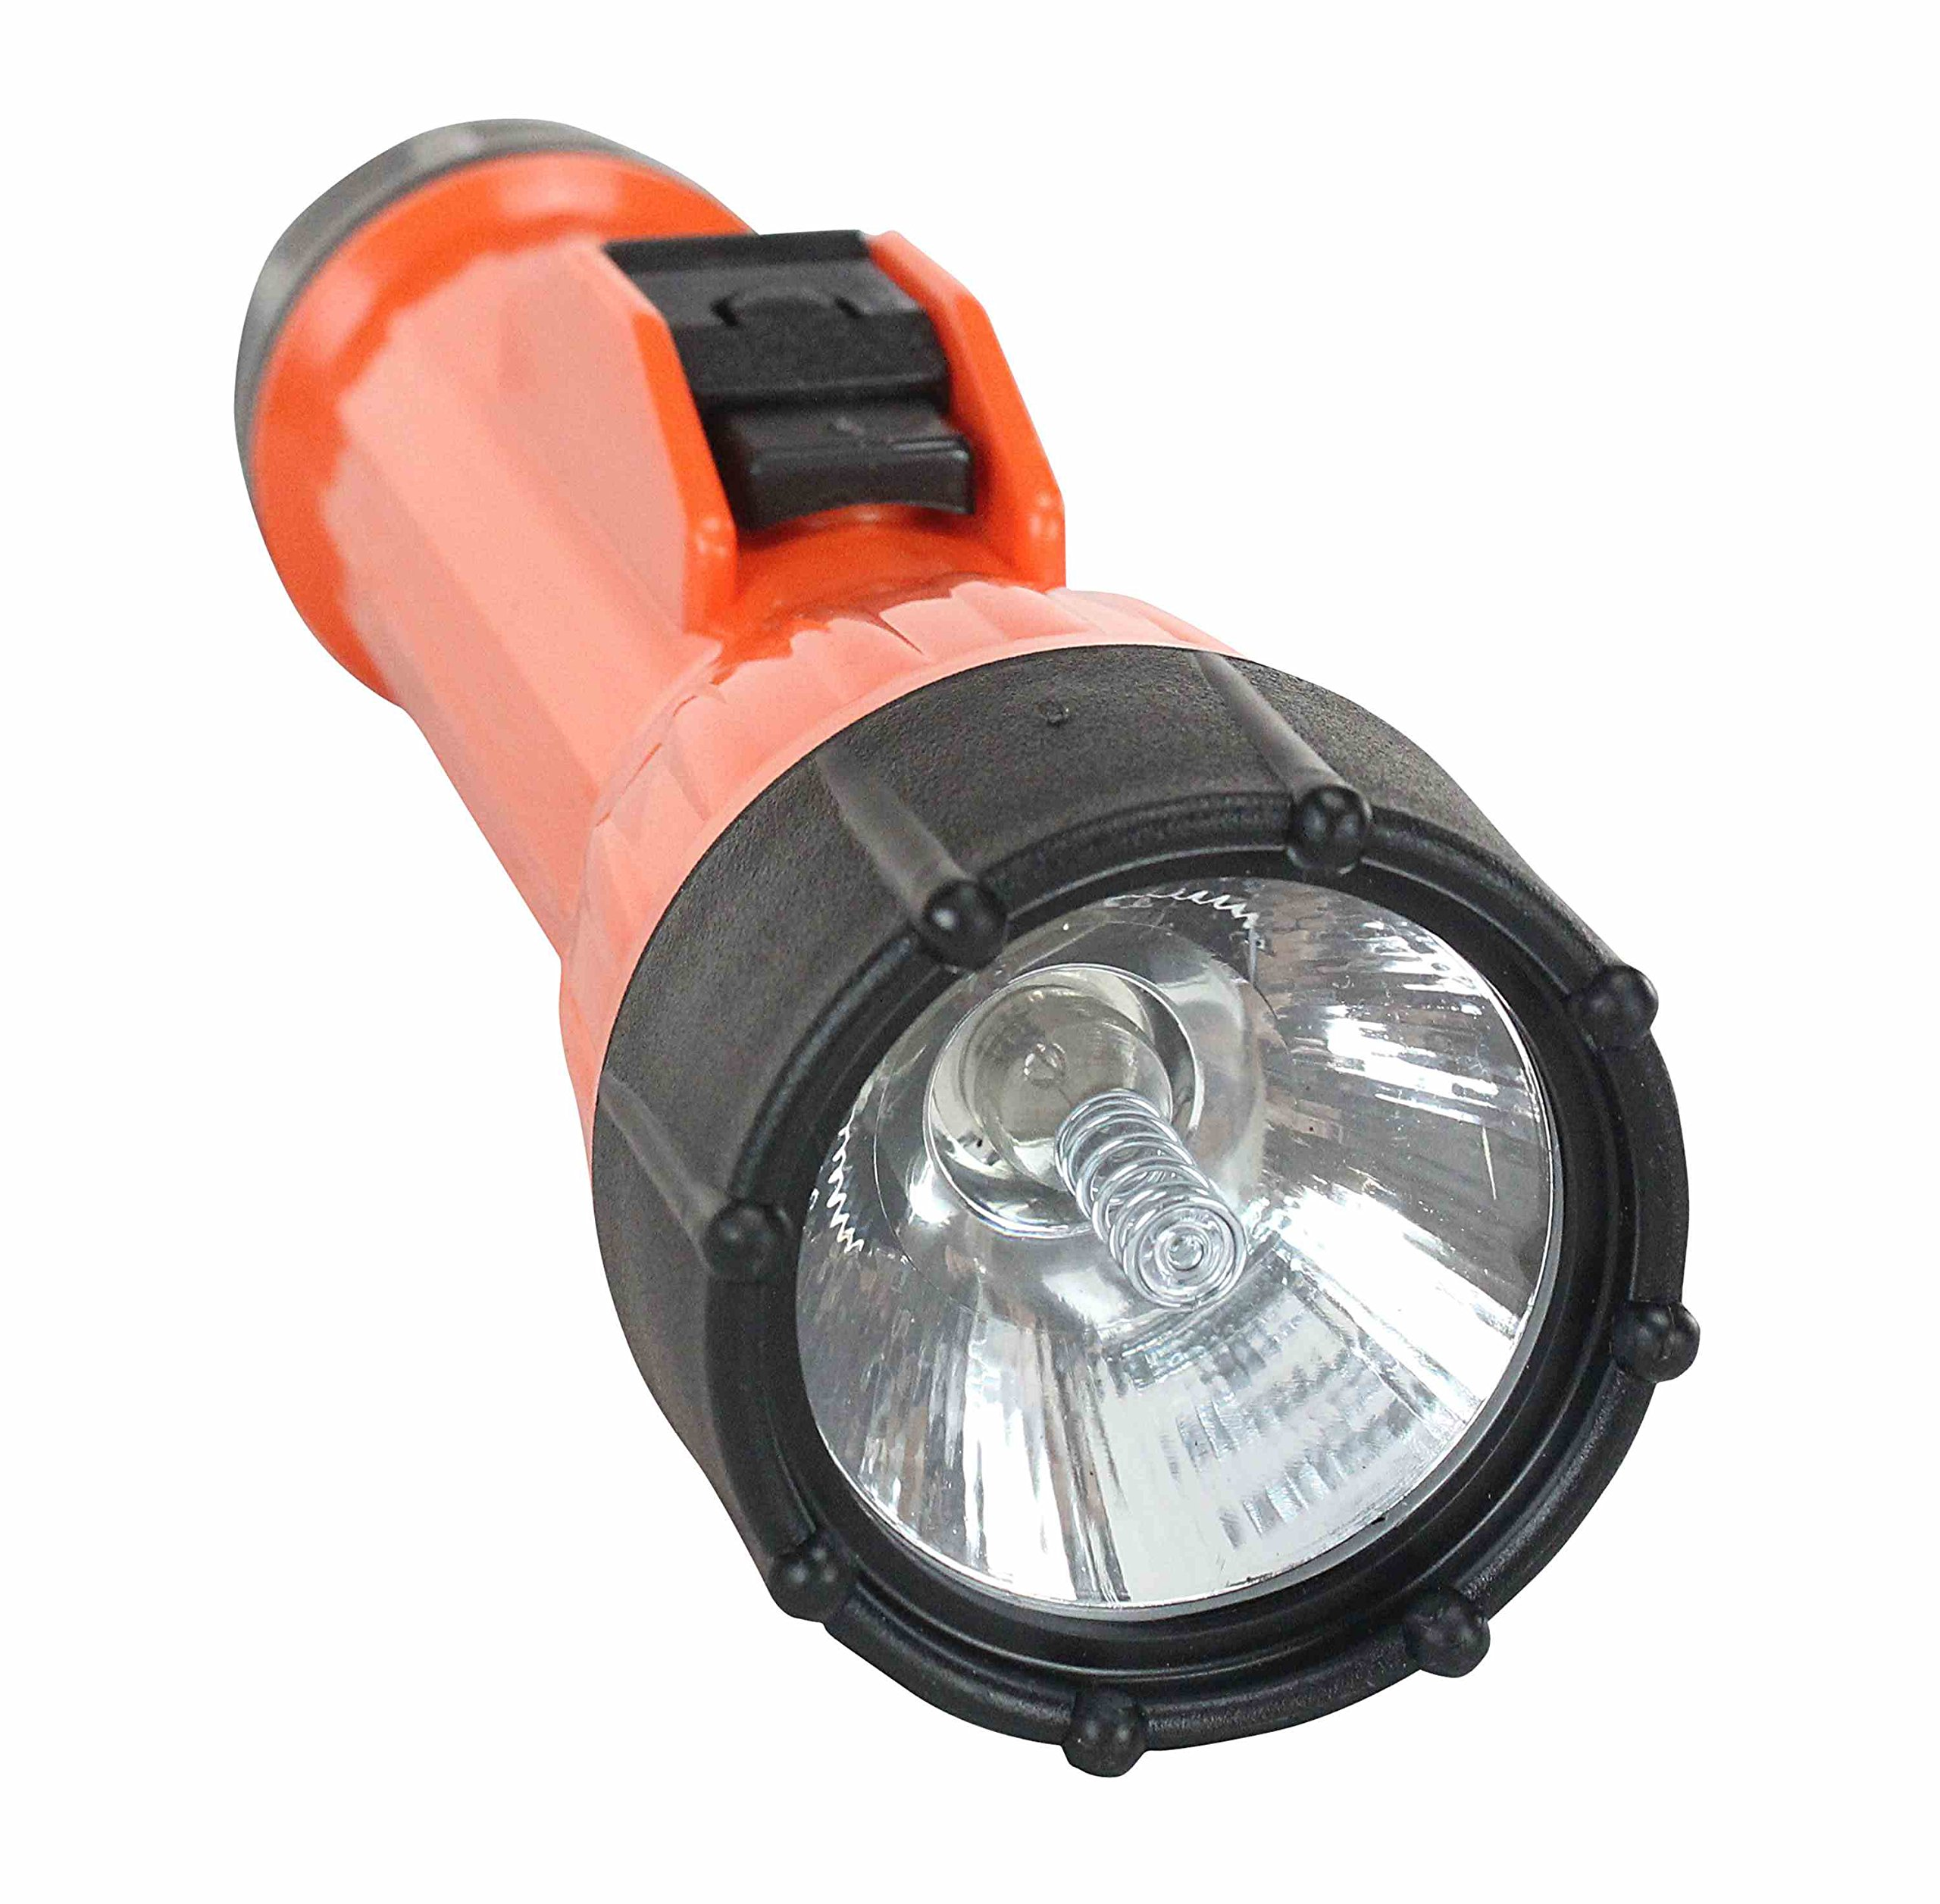 Waterproof Flashlight - Explosion Proof Flashlight - 2 D-Cell - MADE IN THE USA